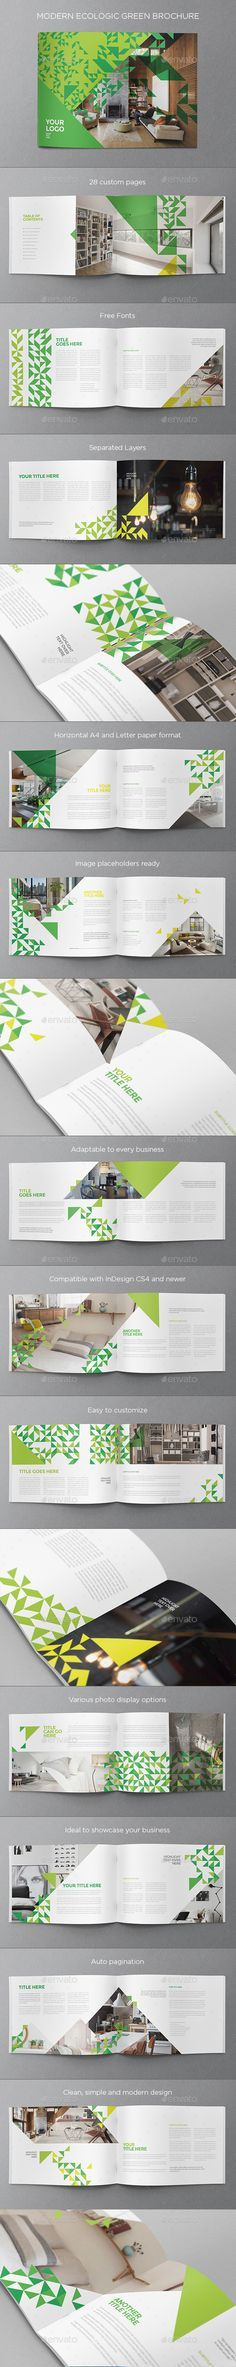 Clean, Modern and Simple Design Ecologic Green Brochure Template InDesign INDD. Download: http://graphicriver.net/item/modern-ecologic-green-brochure/13954111?ref=ksioks